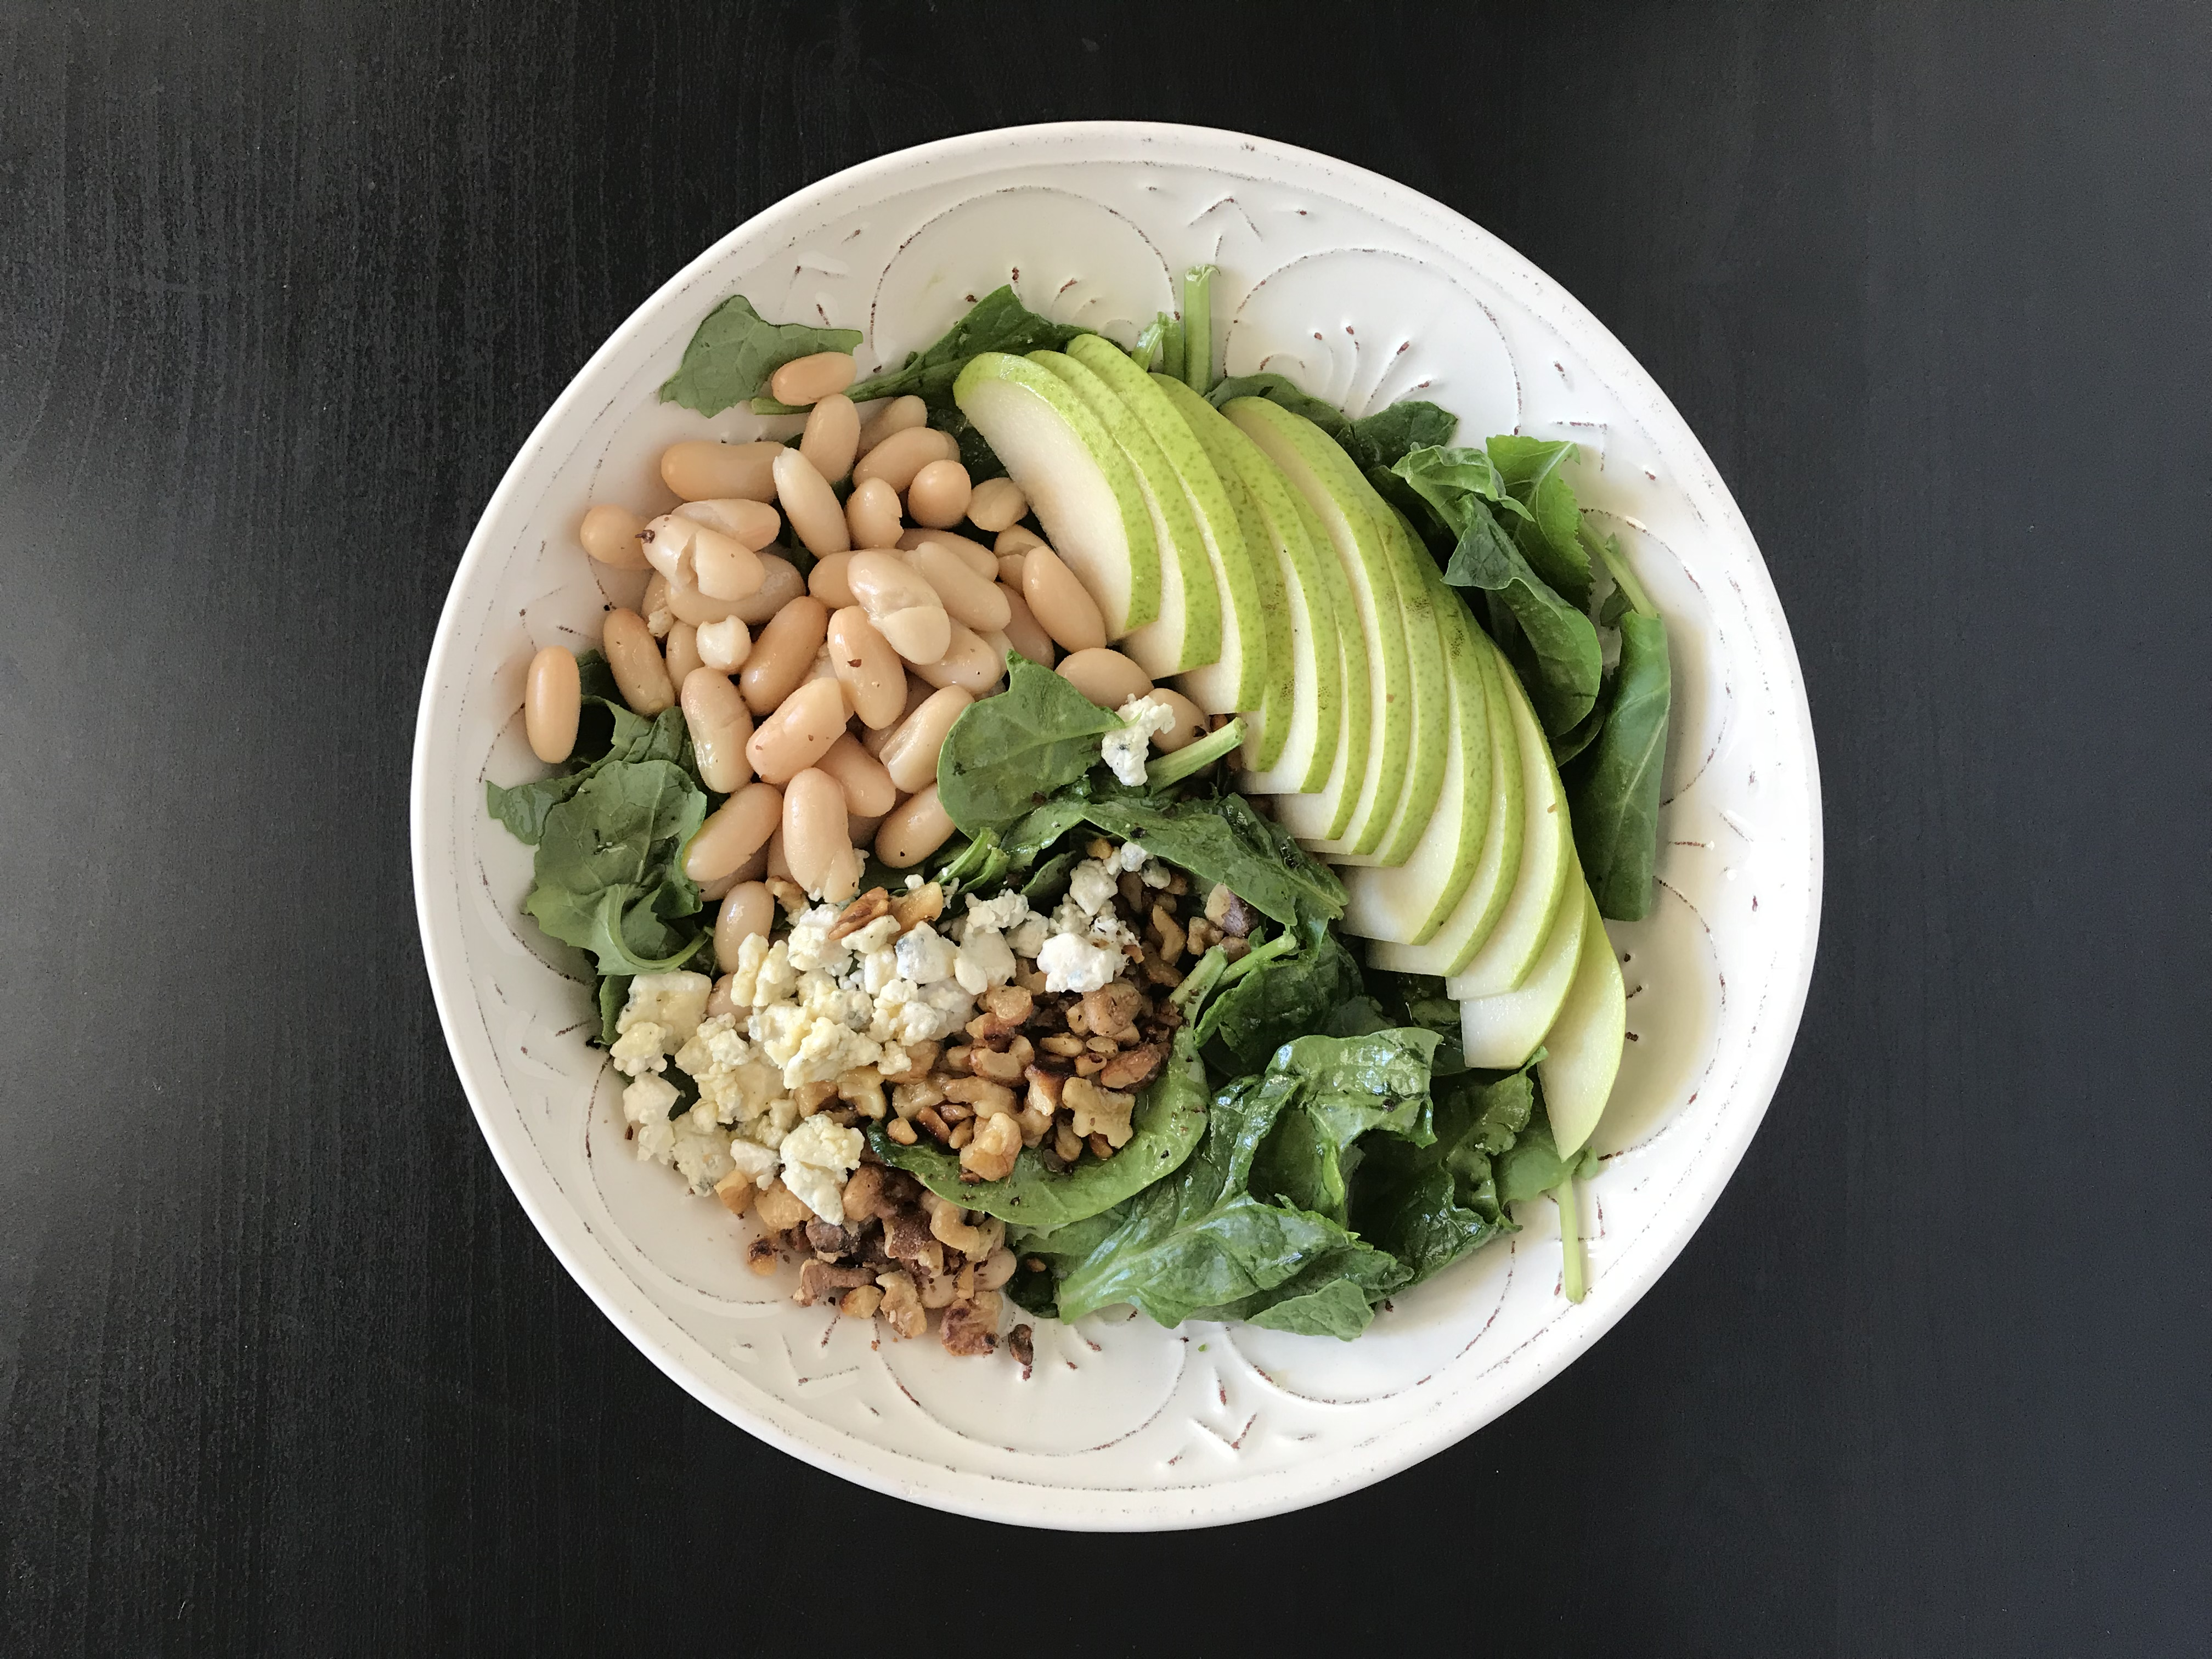 Mixed Greens Salad with Pear, Walnut, and Blue Cheese